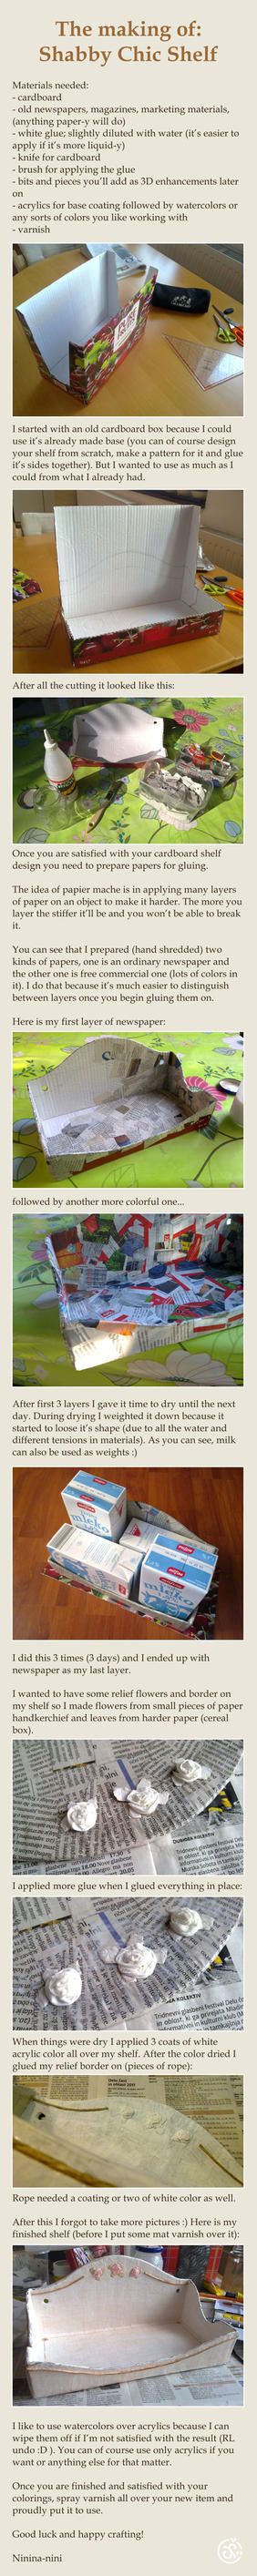 Making of Shabby Chic Shelf by Ninina-nini